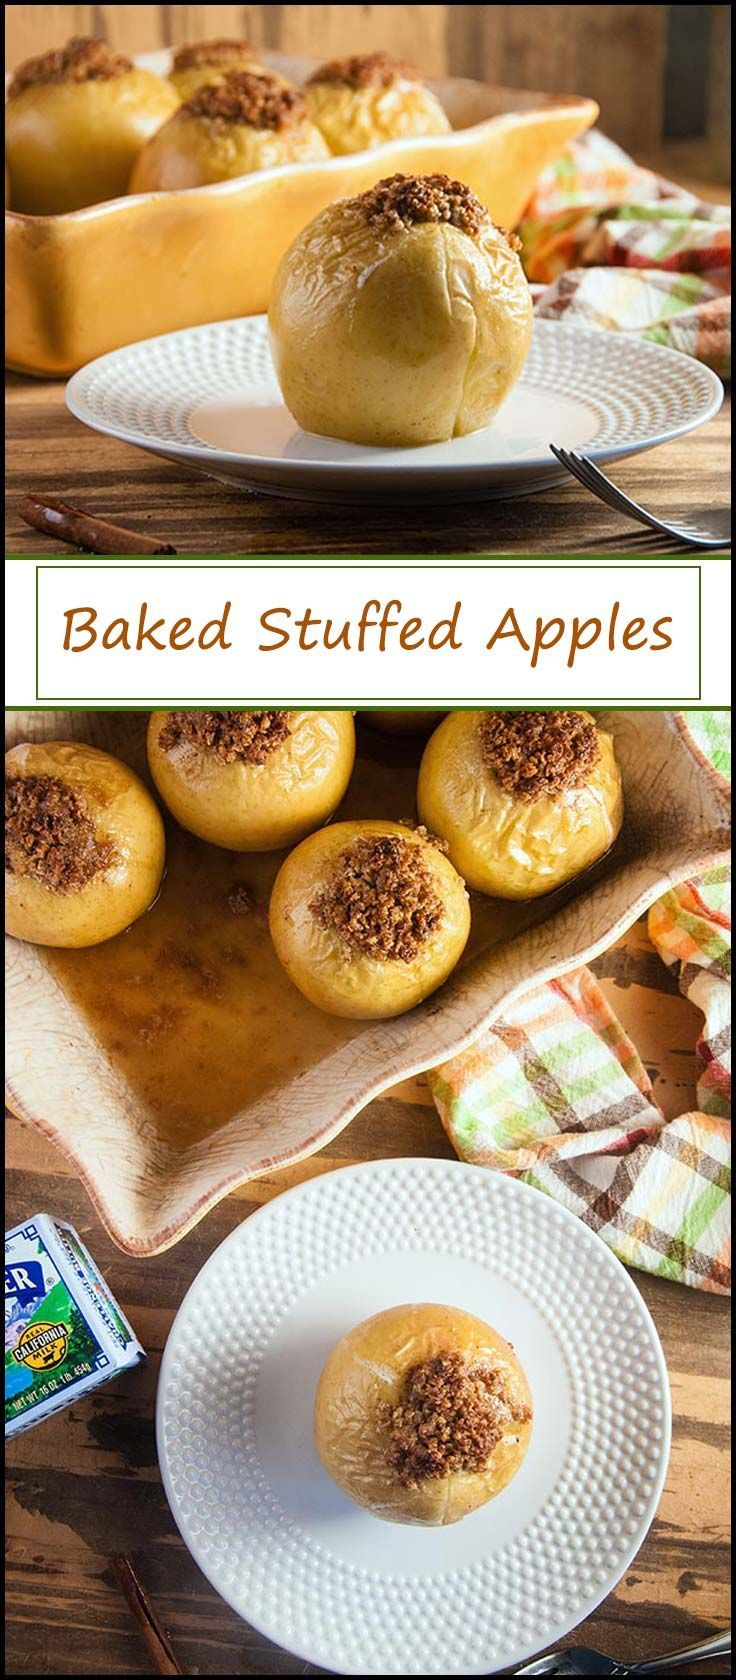 Baked Stuffed Apples @RealCaliforniaMilk #ad #spottheseal #sealsforgood